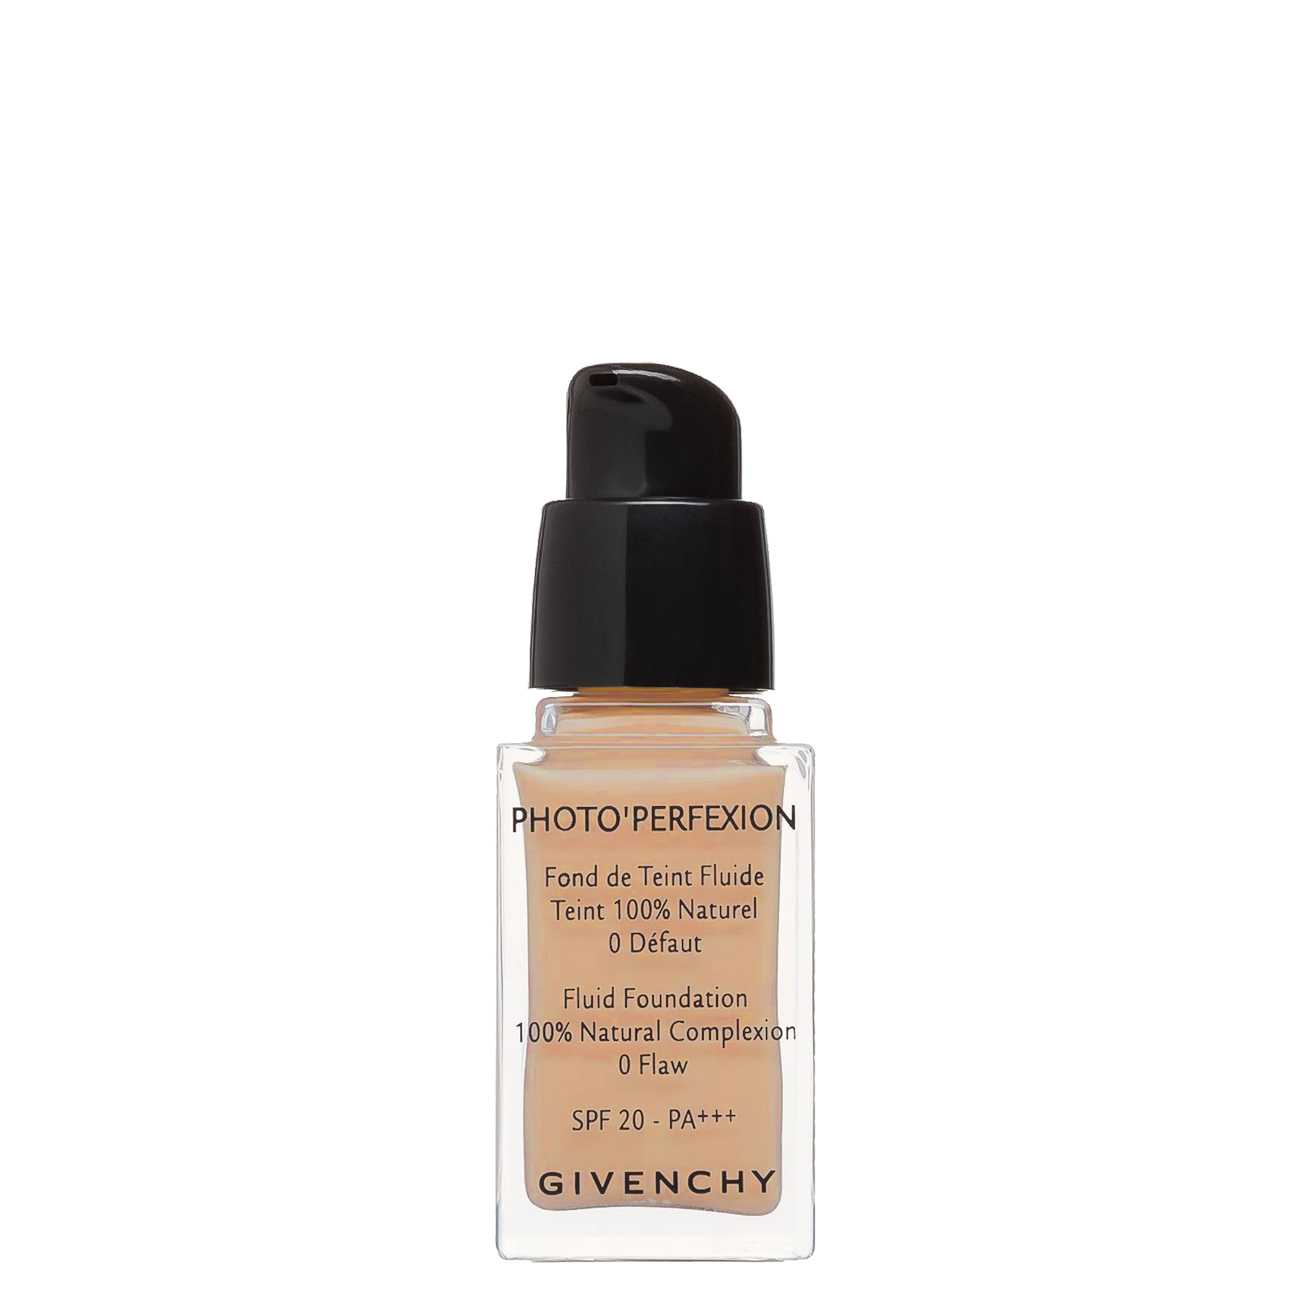 PHOTO PERFEXION 25 ML Perfect Honey 6